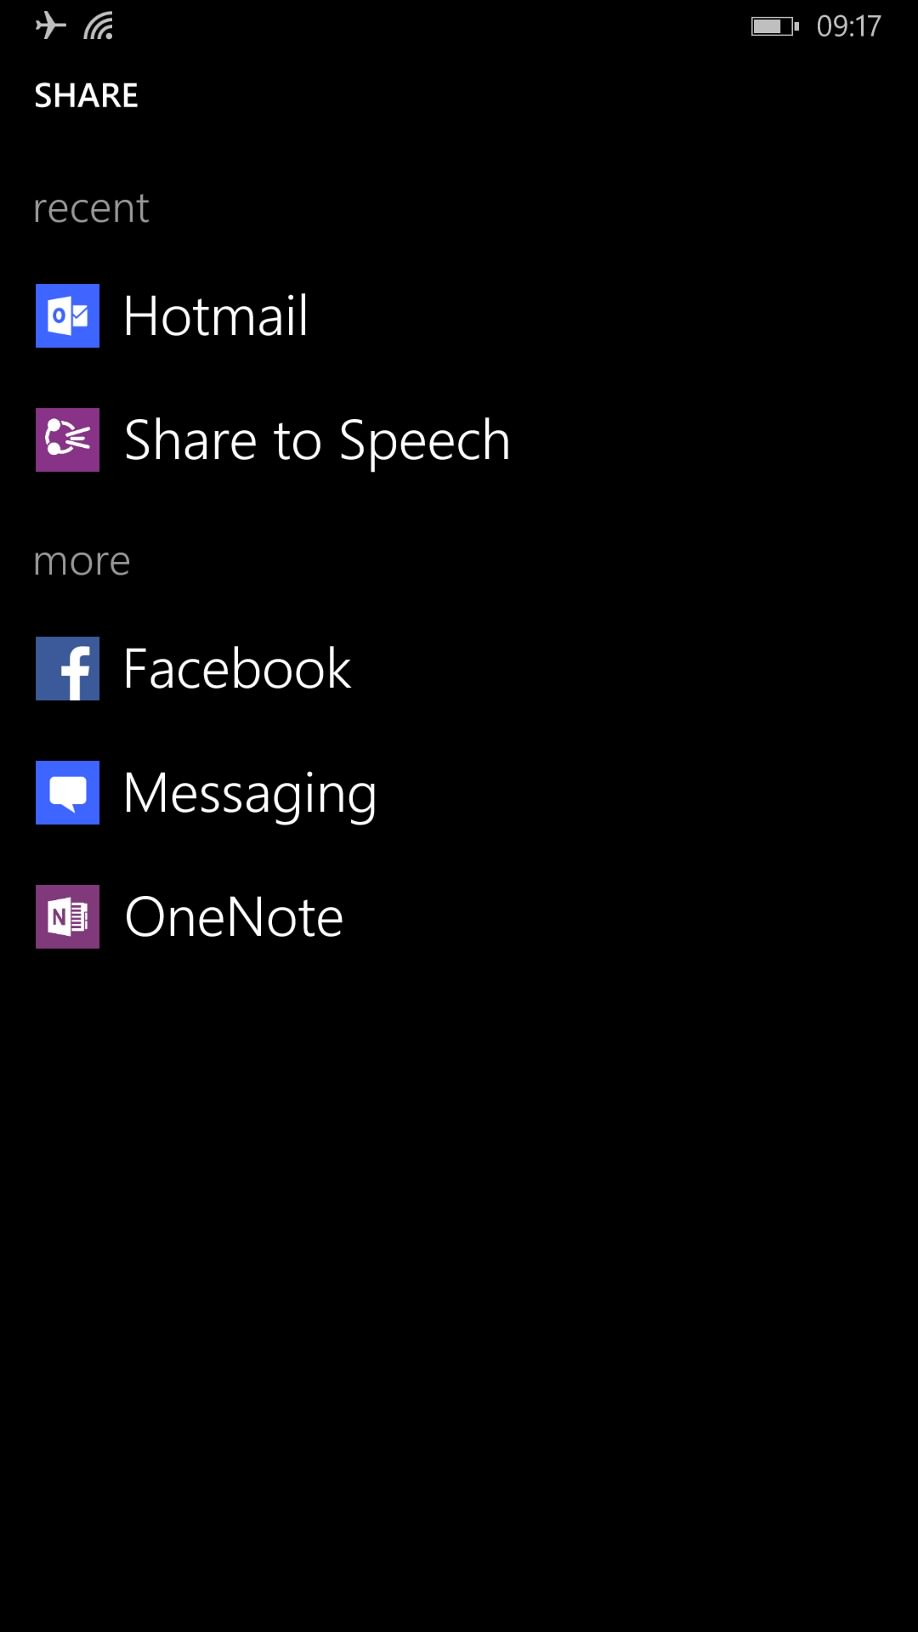 Screenshot, Share to Speech on Windows Phone